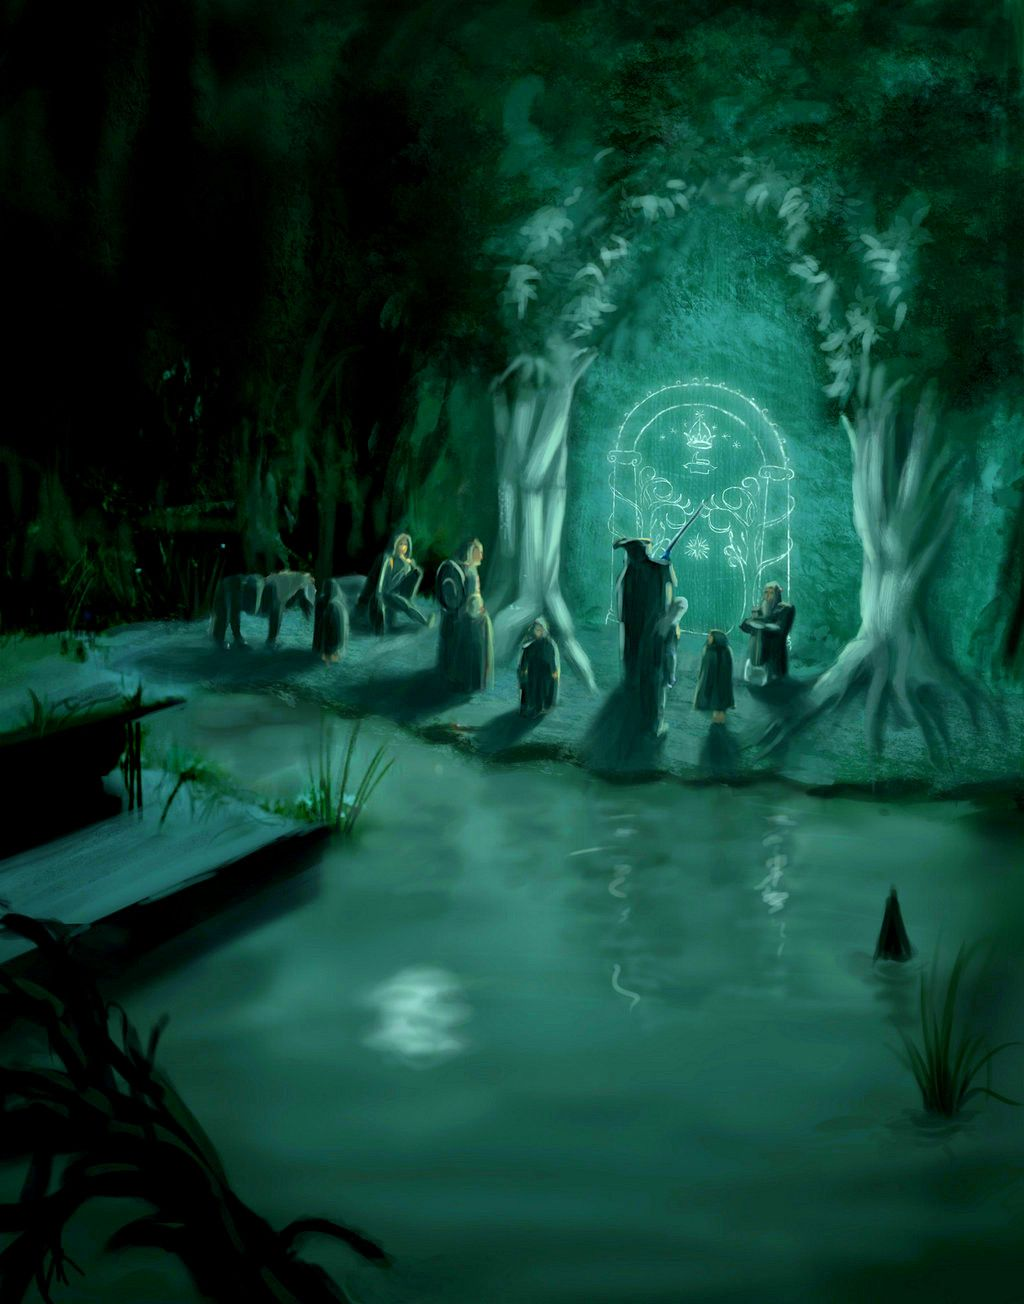 Pin by Martin on # Lord of the Rings | Lord of the rings ...